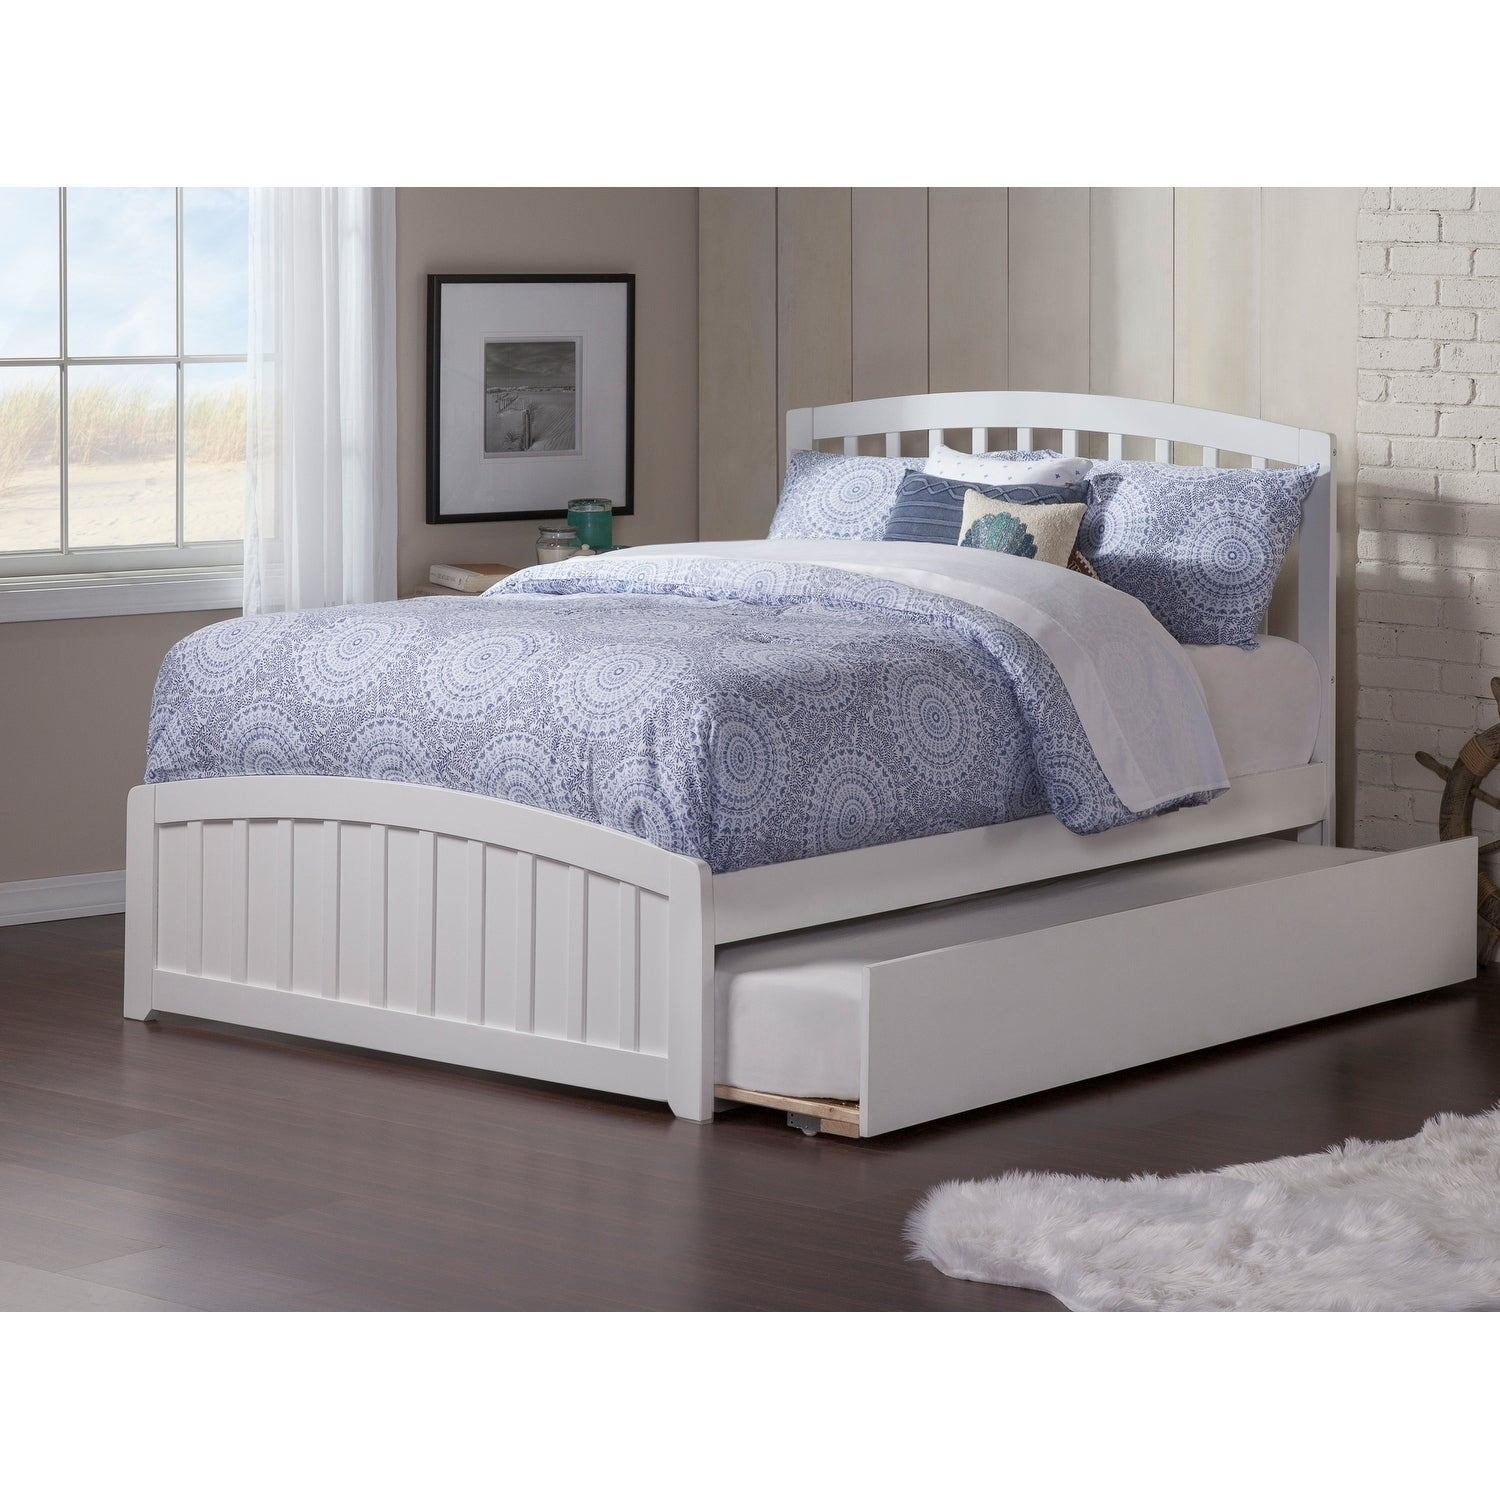 Richmond Full Bed With Matching Foot Board With Urban